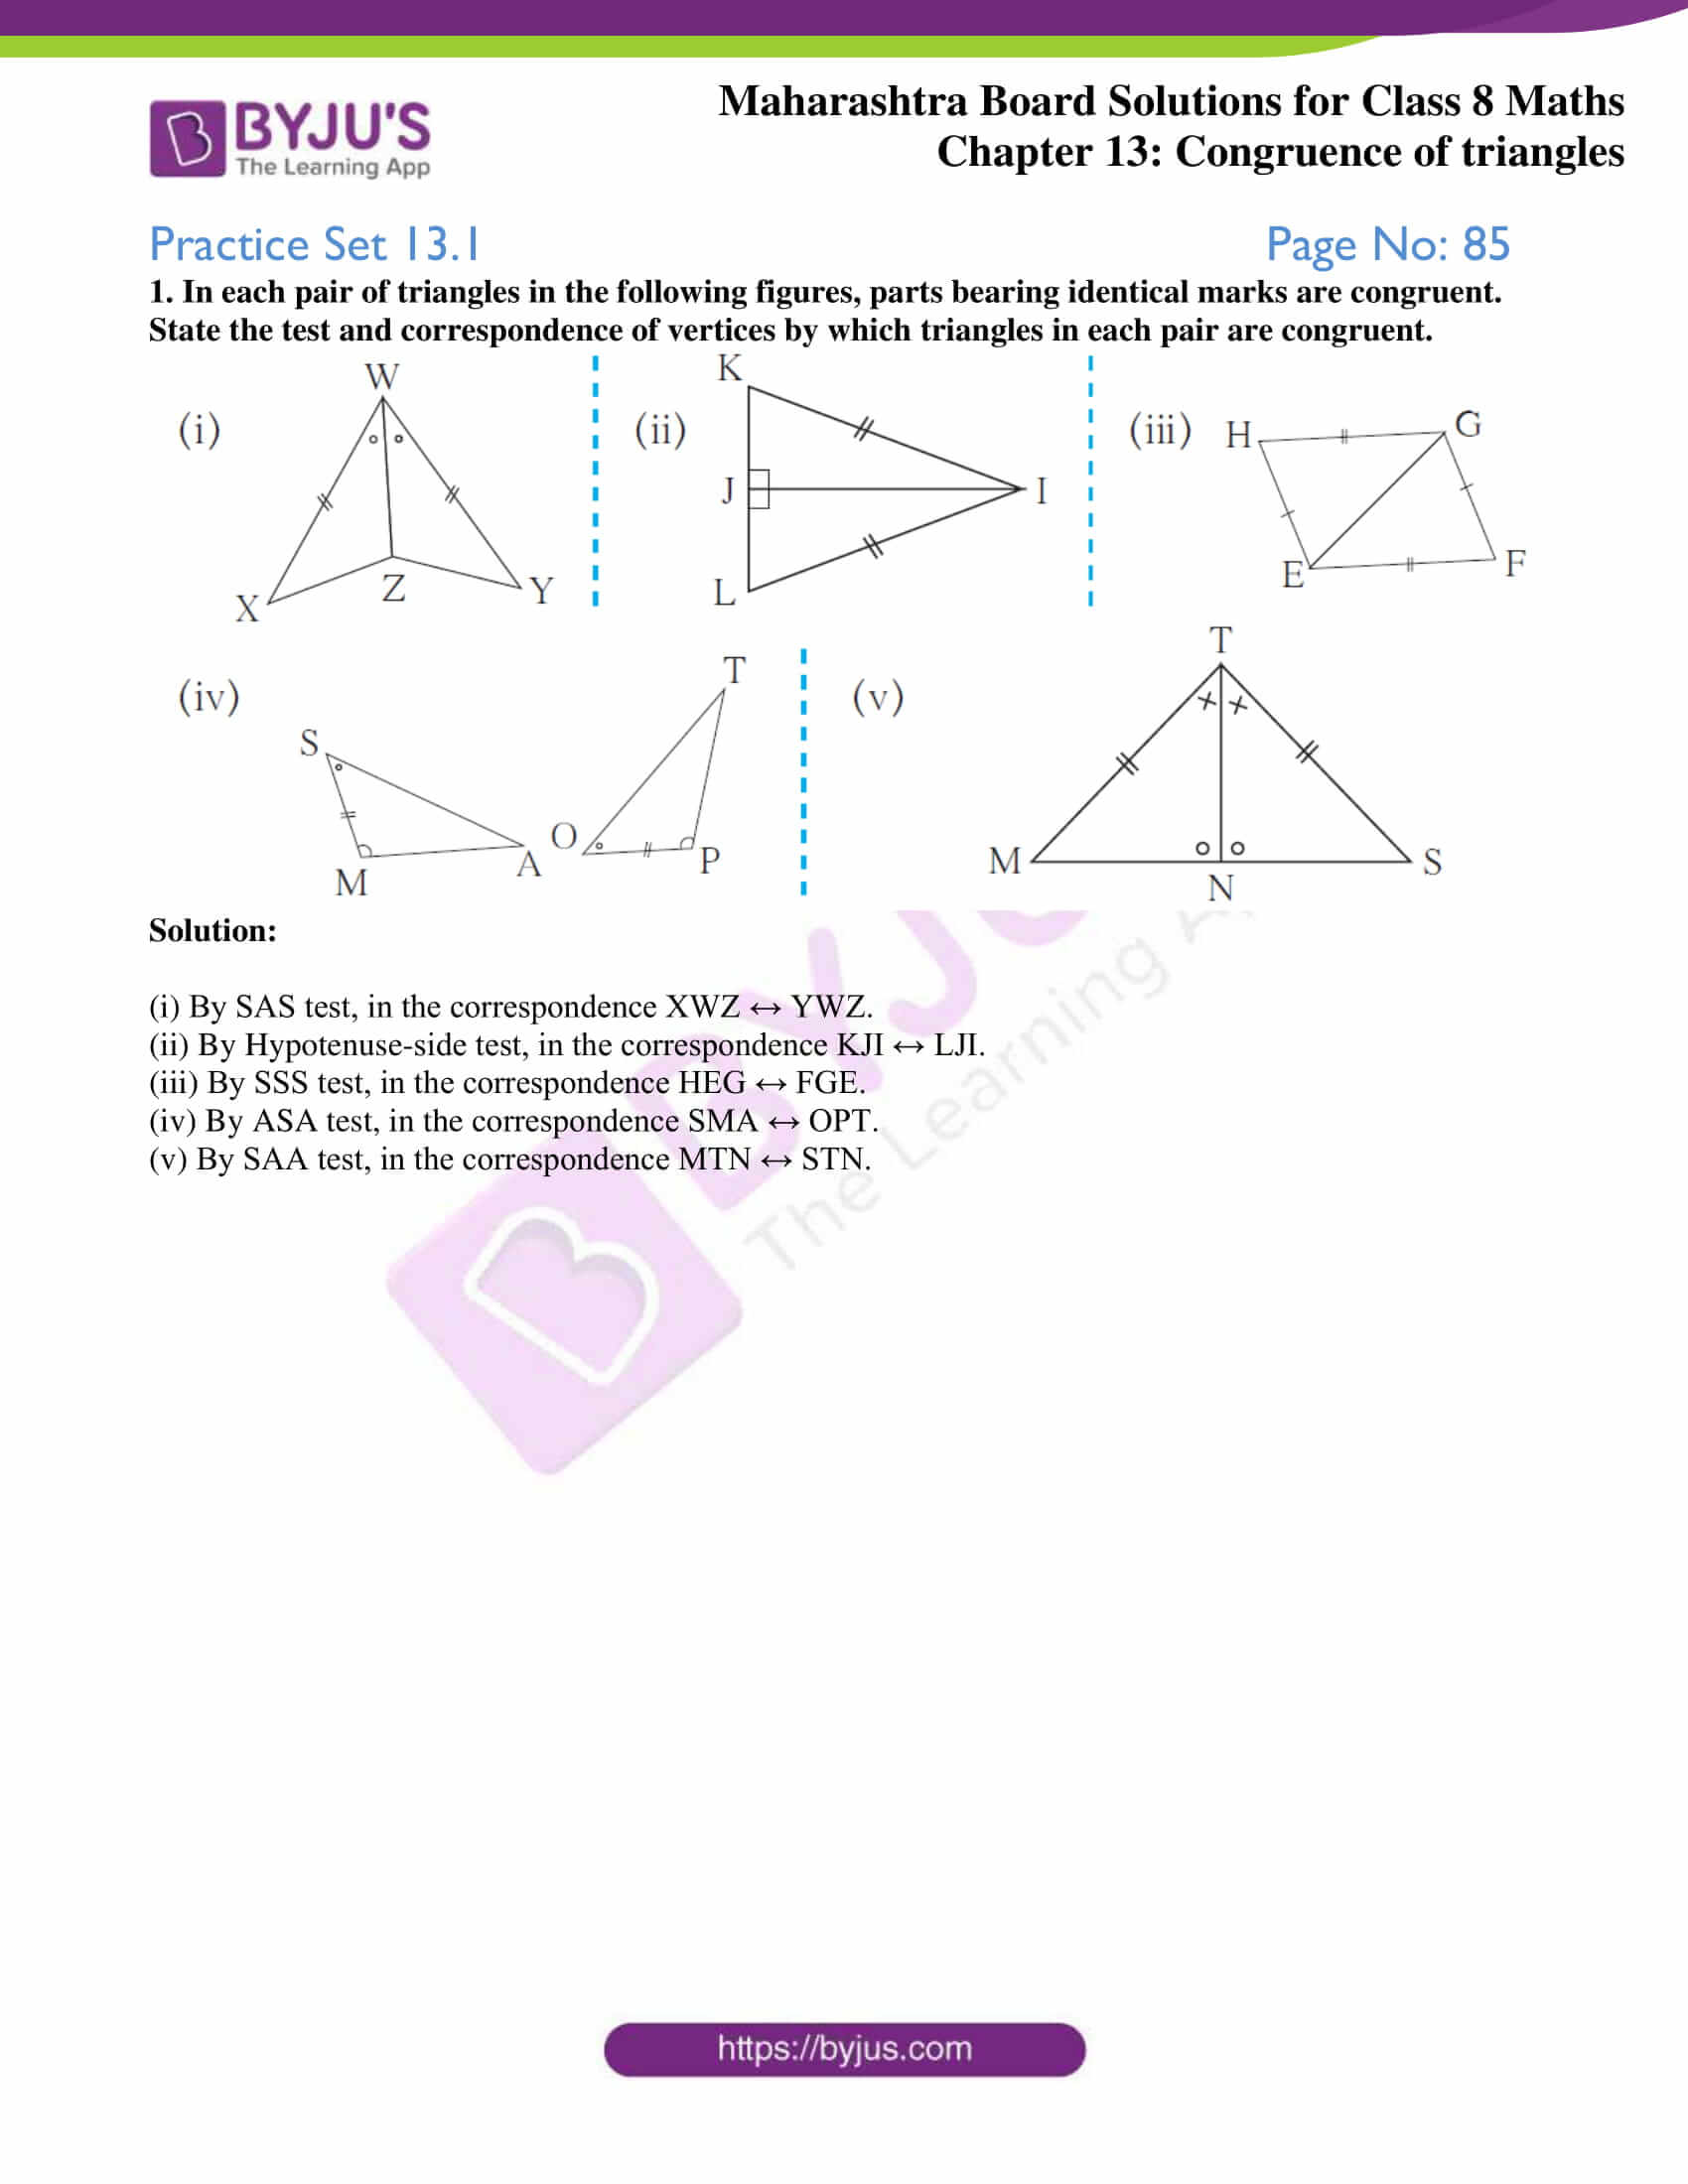 msbshse sol for class 8 maths chapter 13 1